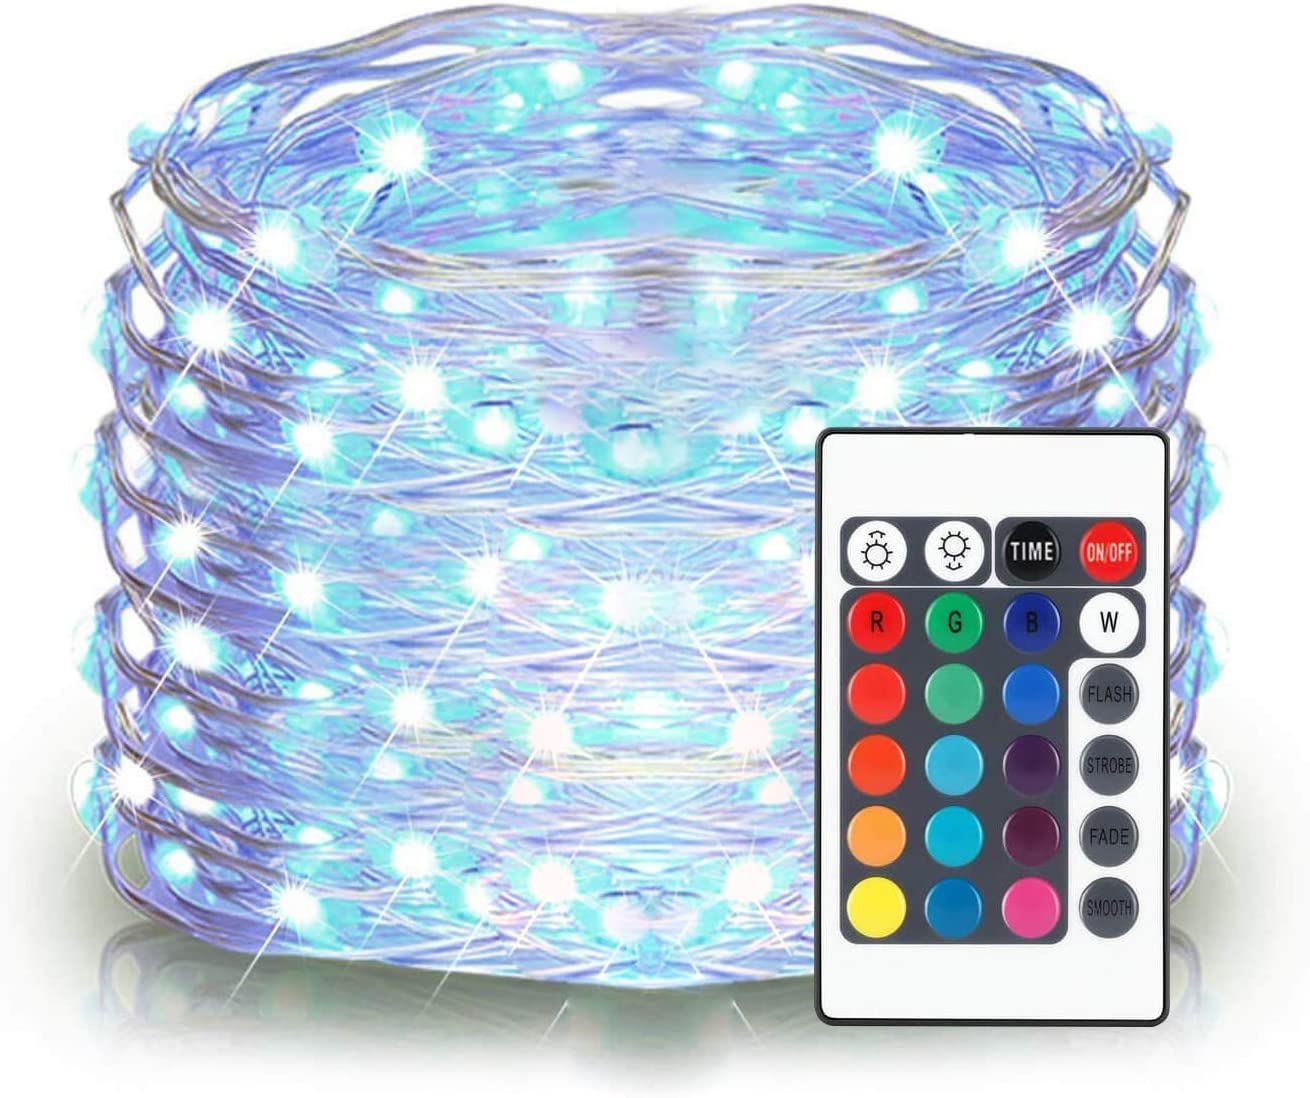 ALOVECO LED String Lights, 16ft 50 LED Battery Powered Multi Color Changing Fairy String Lights with Remote, 16 Colors Starry Twinkle String Lights for Bedroom,Garden,Christmas, Party